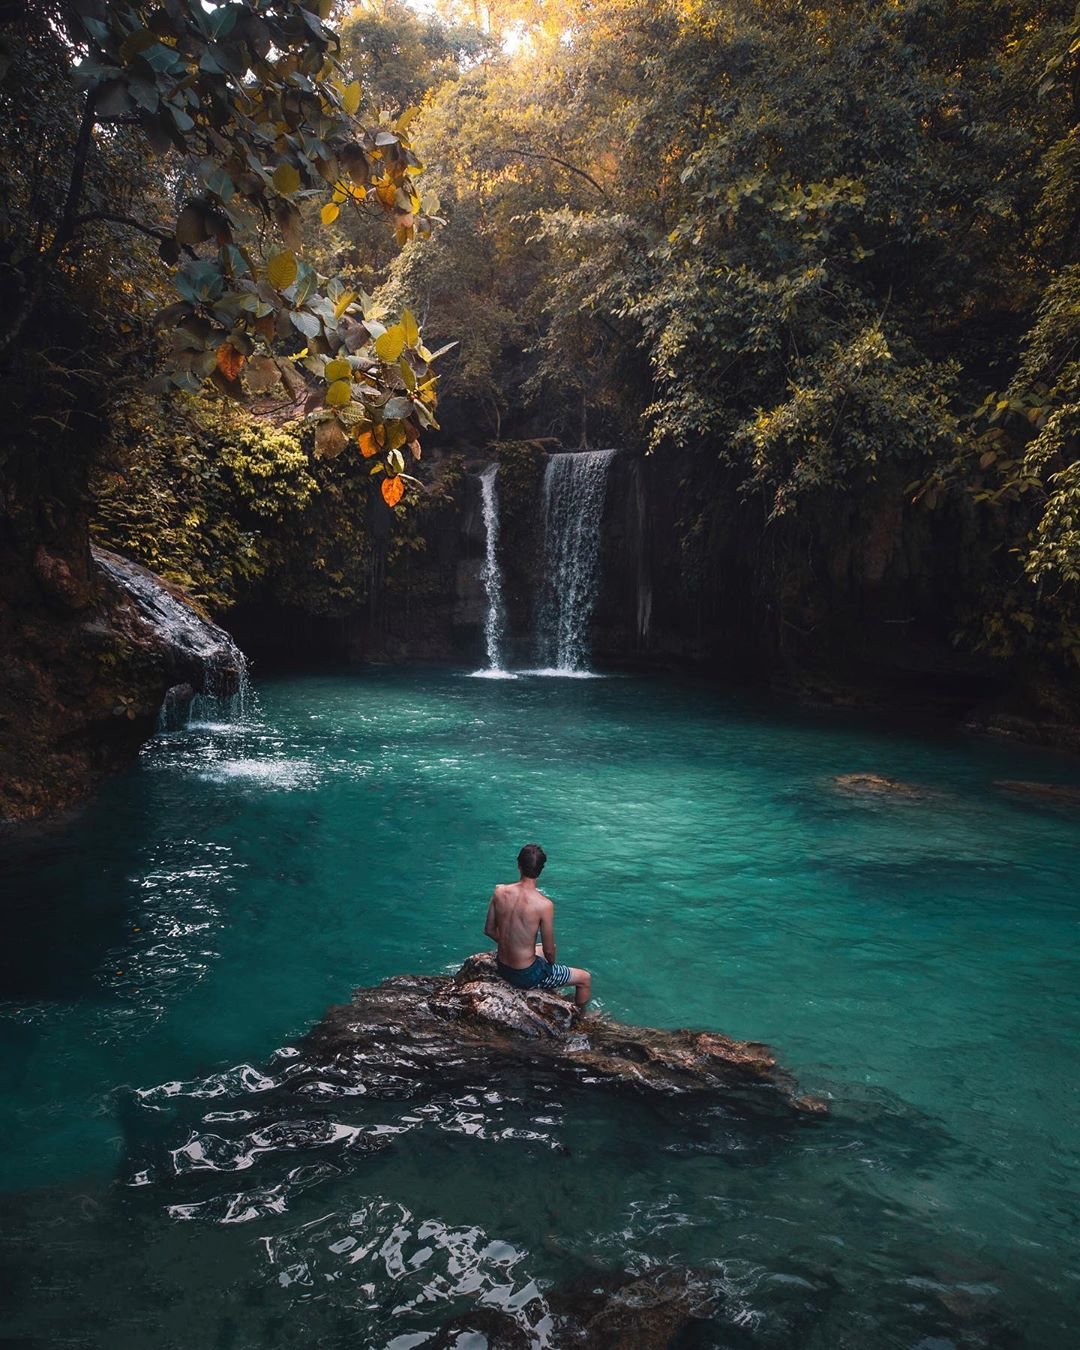 Emerald Colored Lagoons and Waterfalls